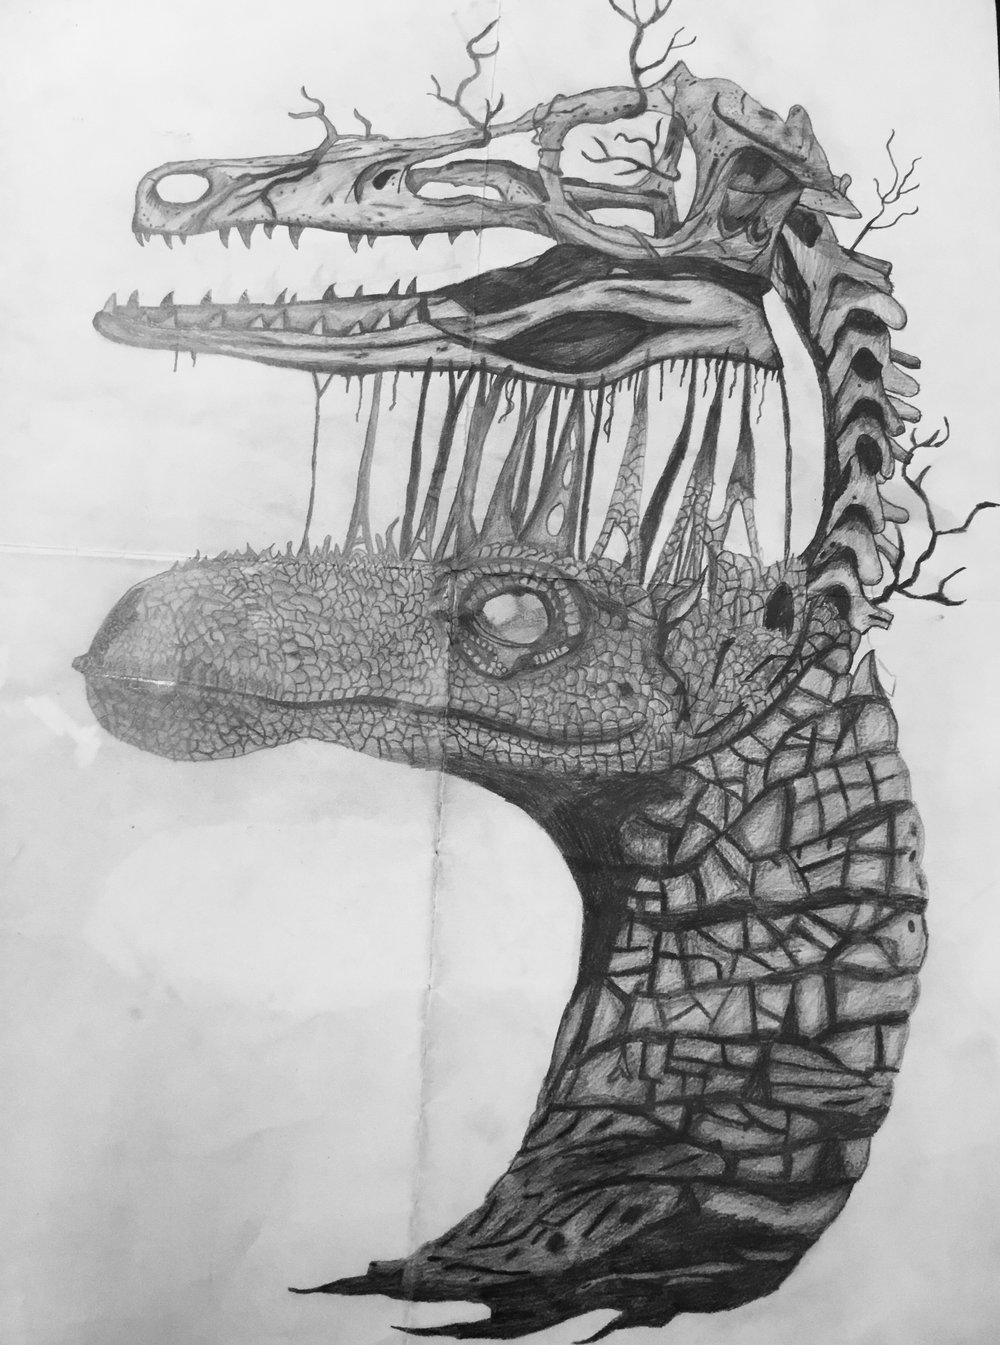 Kyle McConnon 3rd year art student for his fantastic drawing skills displayed in his artwork of a dinosaur.